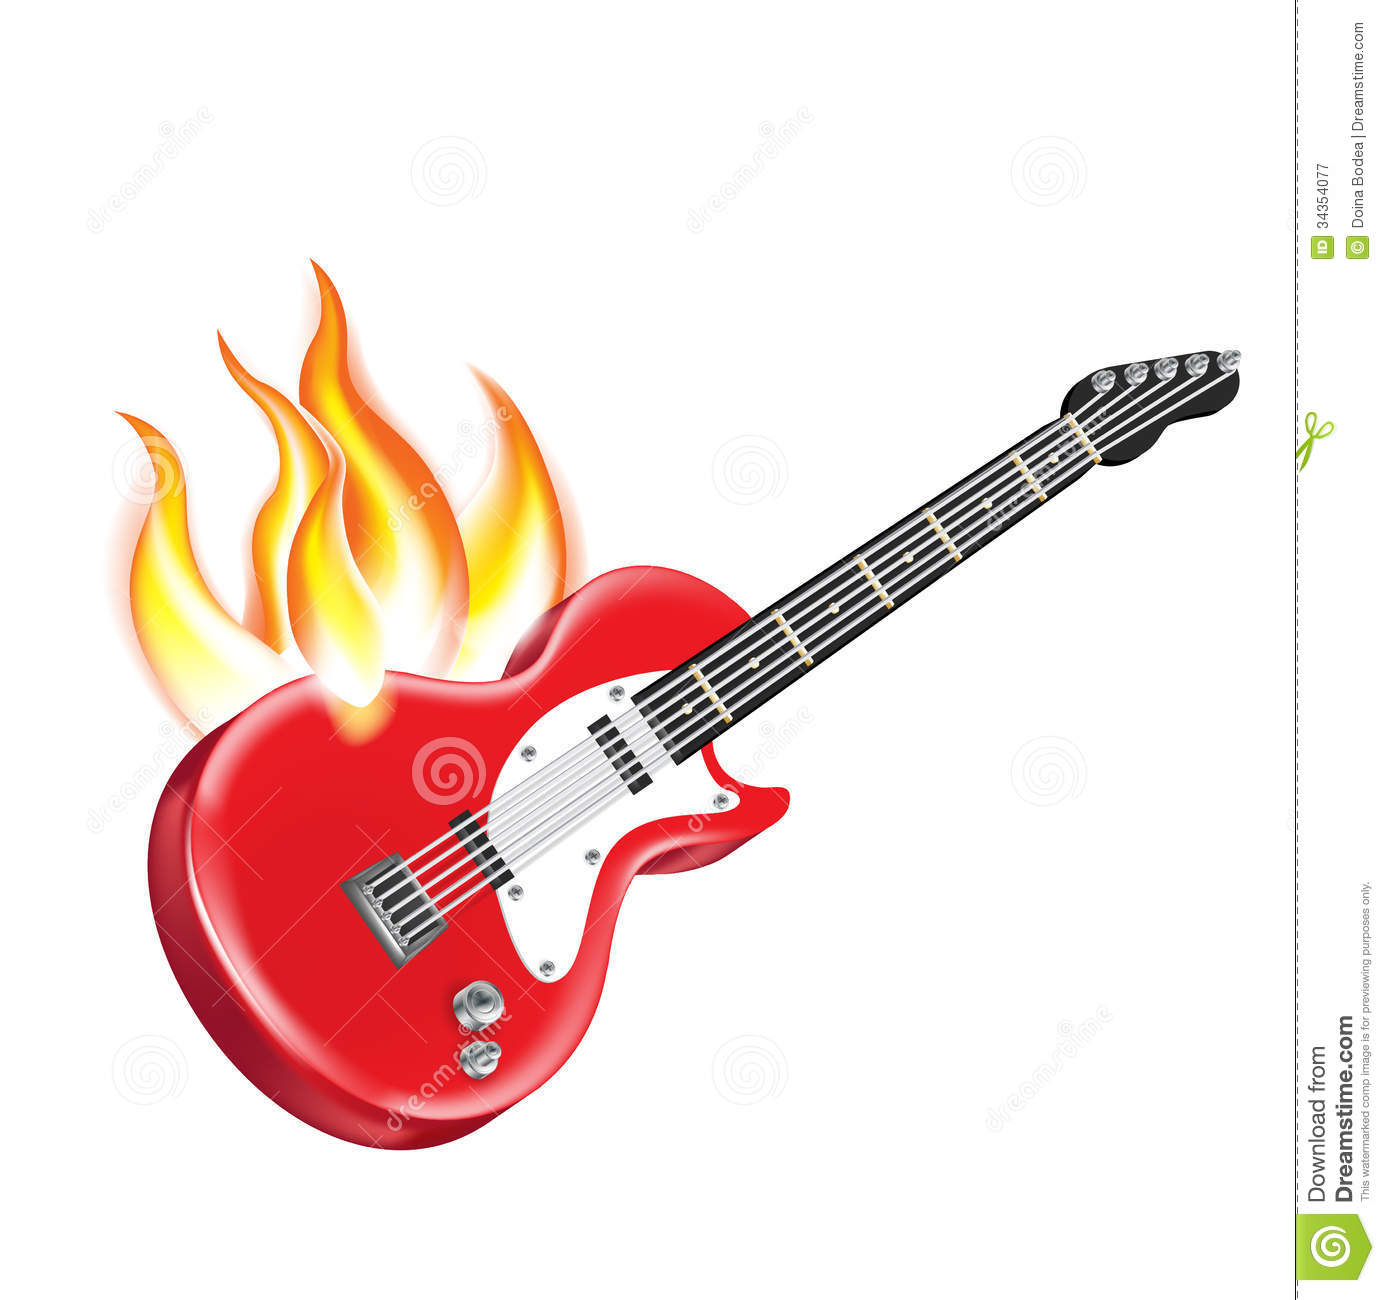 electric guitar on fire clipart panda free clipart images rh clipartpanda com red electric guitar clip art red electric guitar clip art